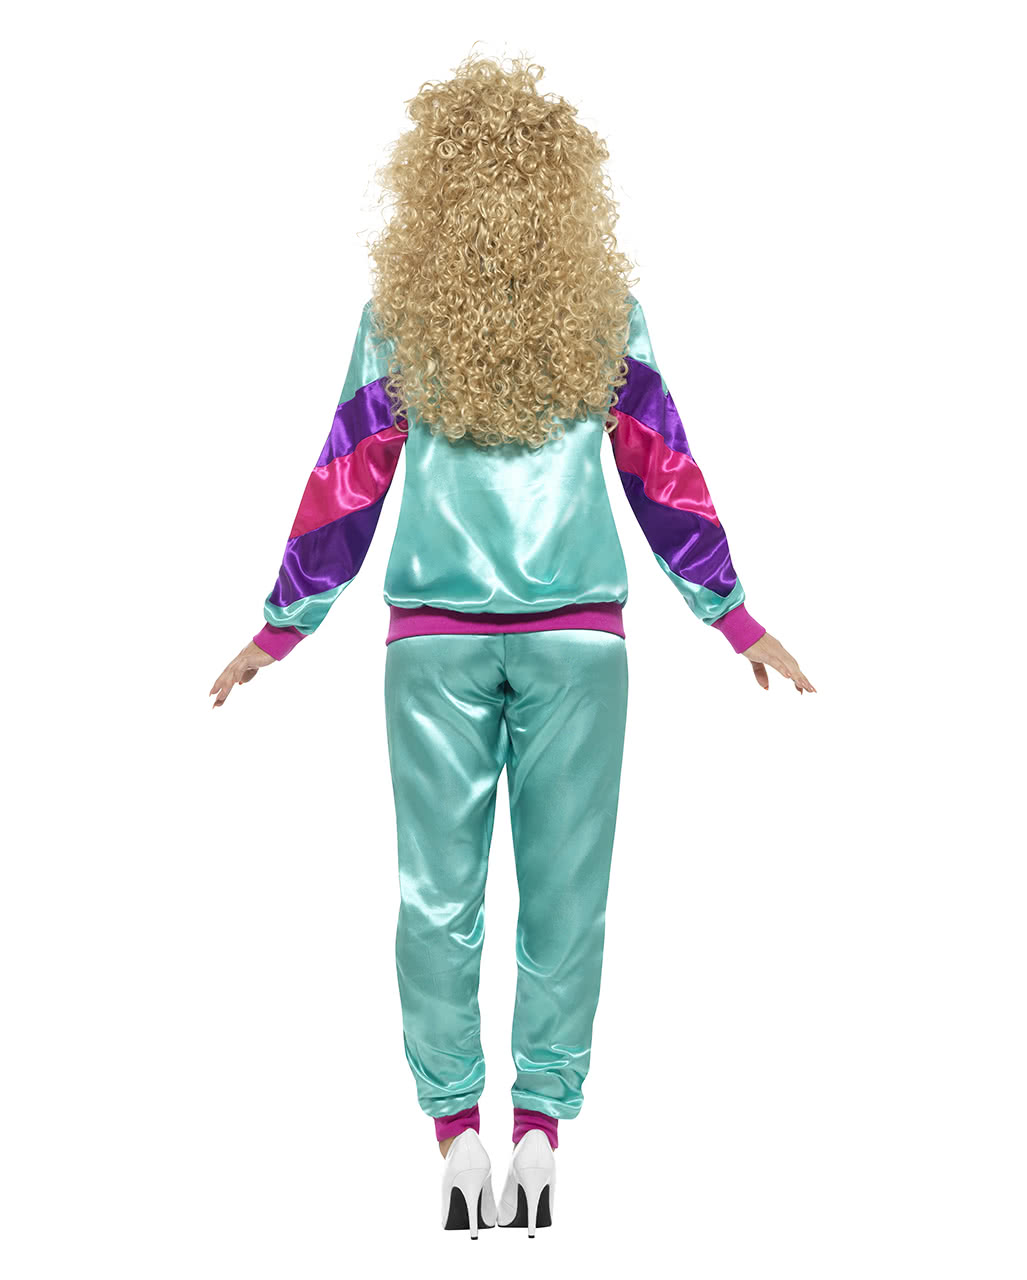 80s Jogging Suit Costume | Bad button | horror-shop.com